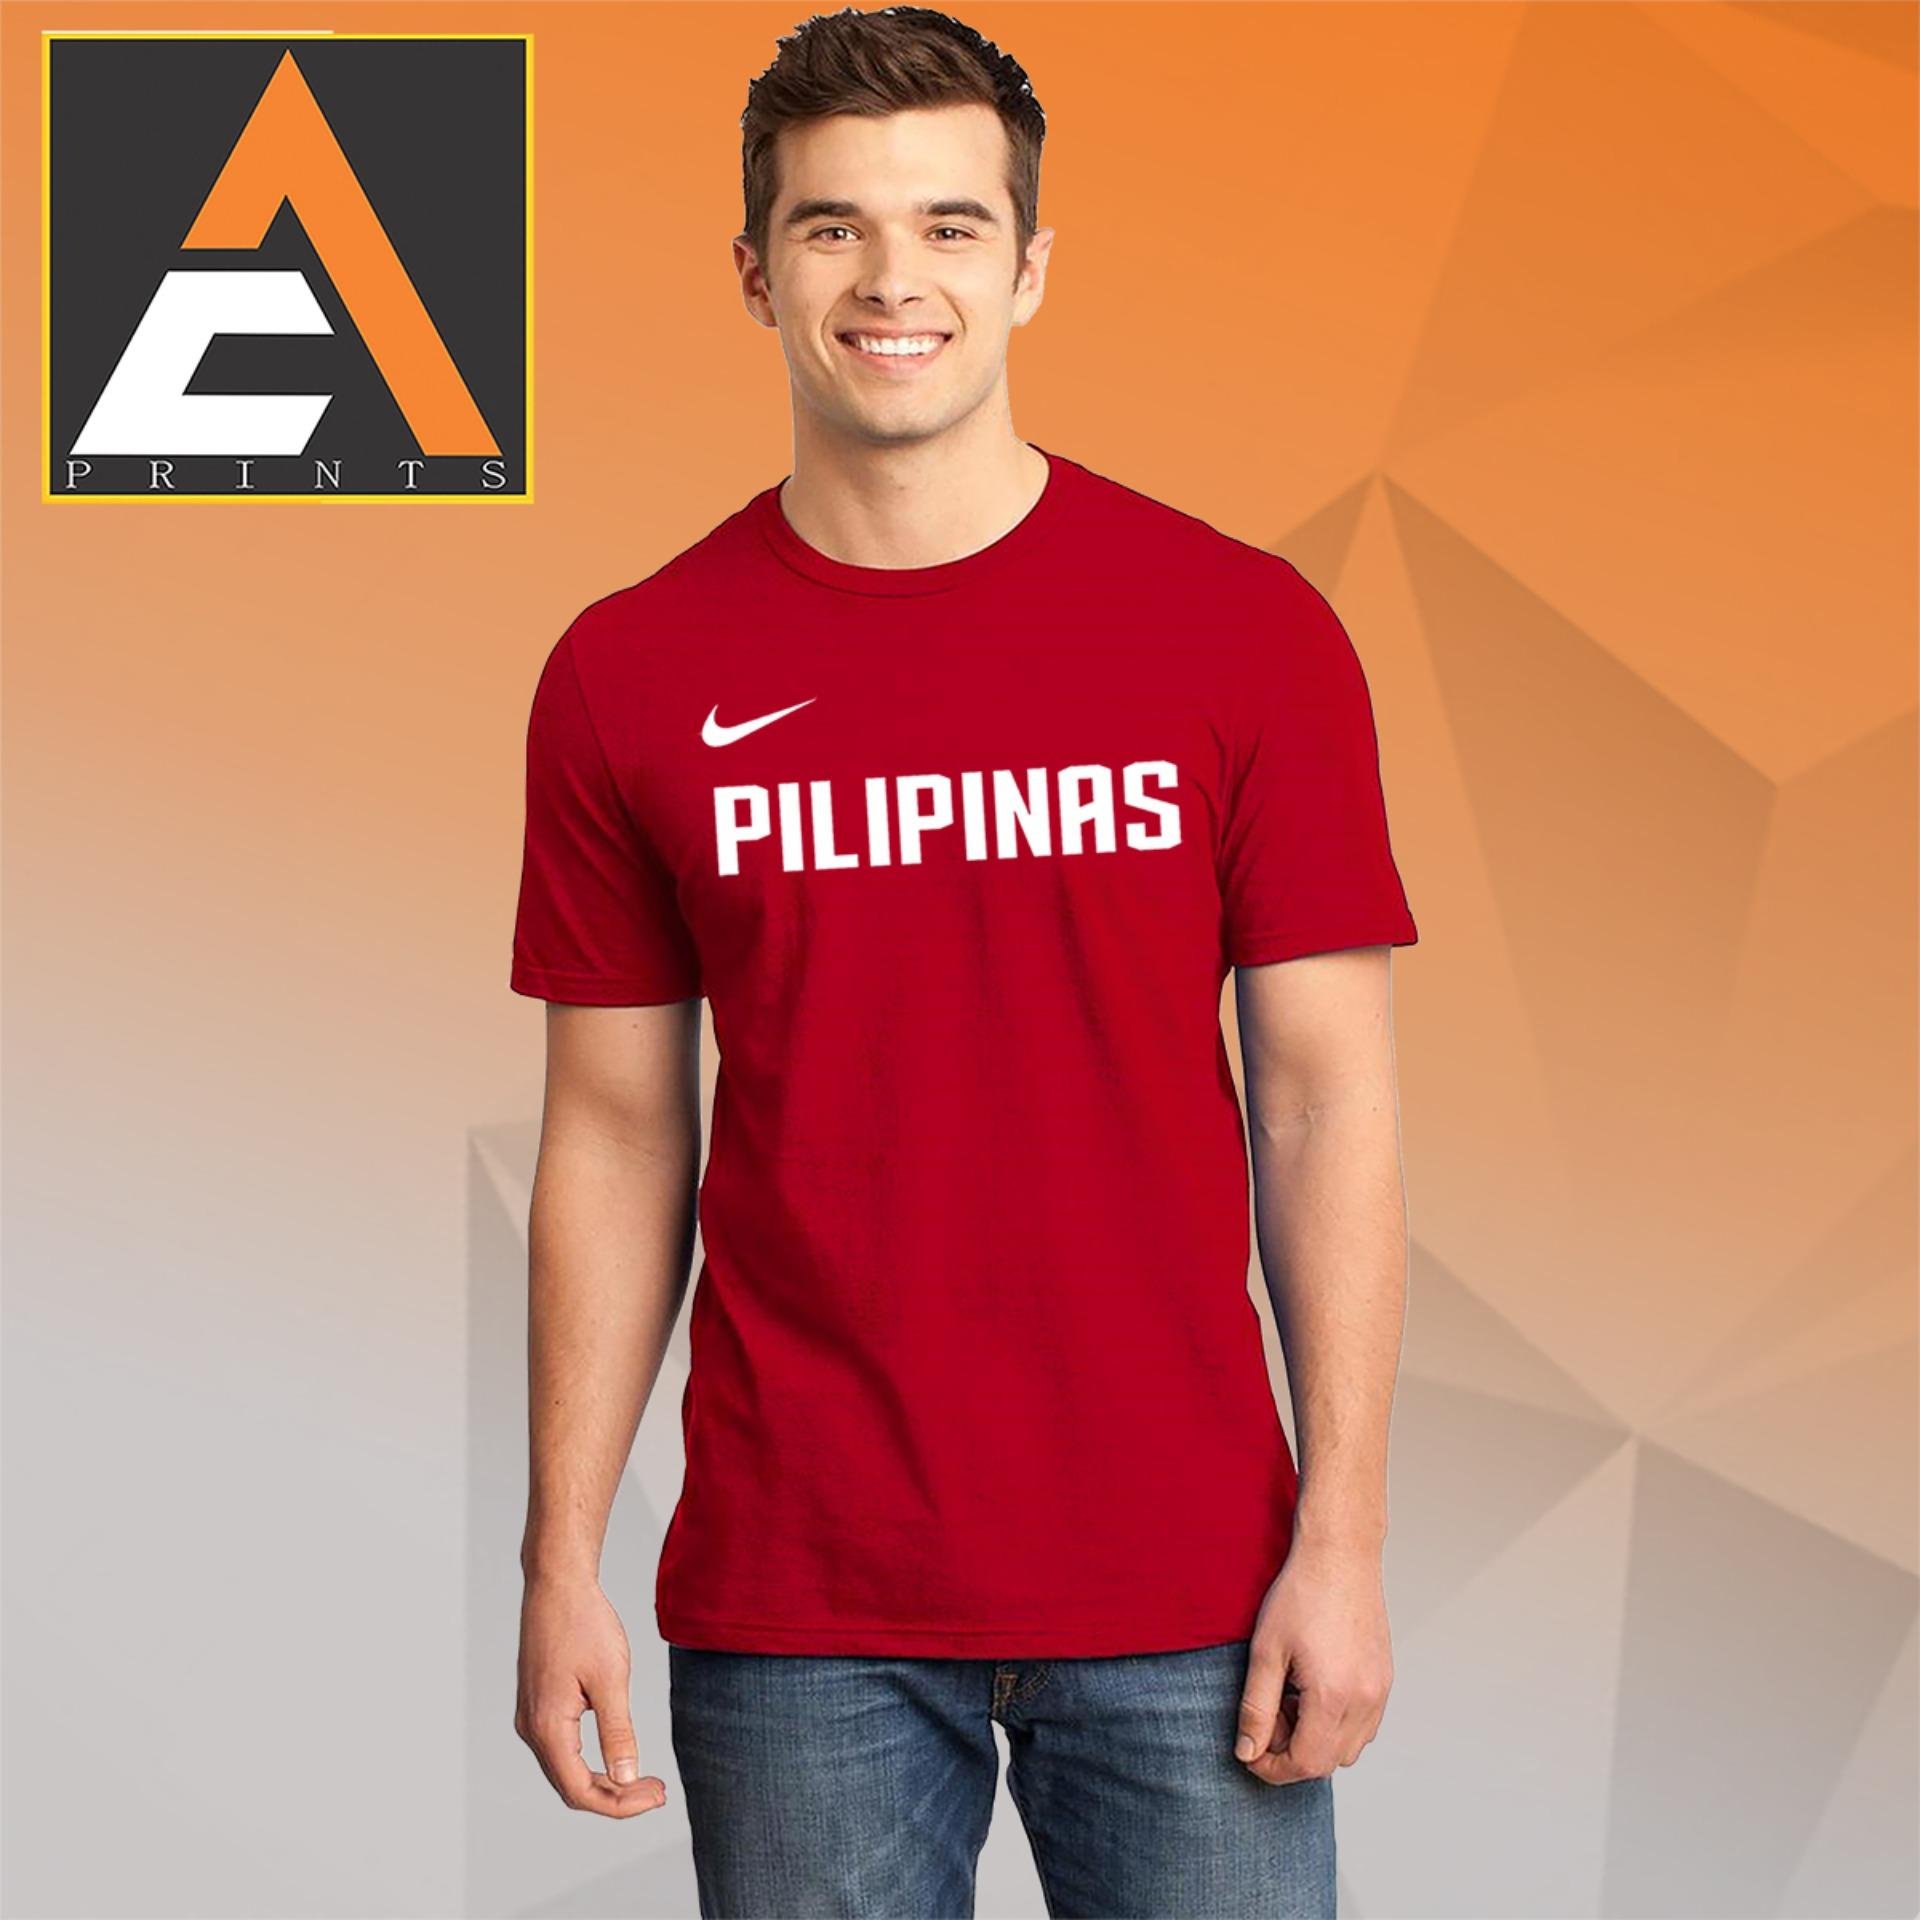 Gilas Pilipinas t shirt Basketball Shirt Unisex(Men/Women)(Male/Female